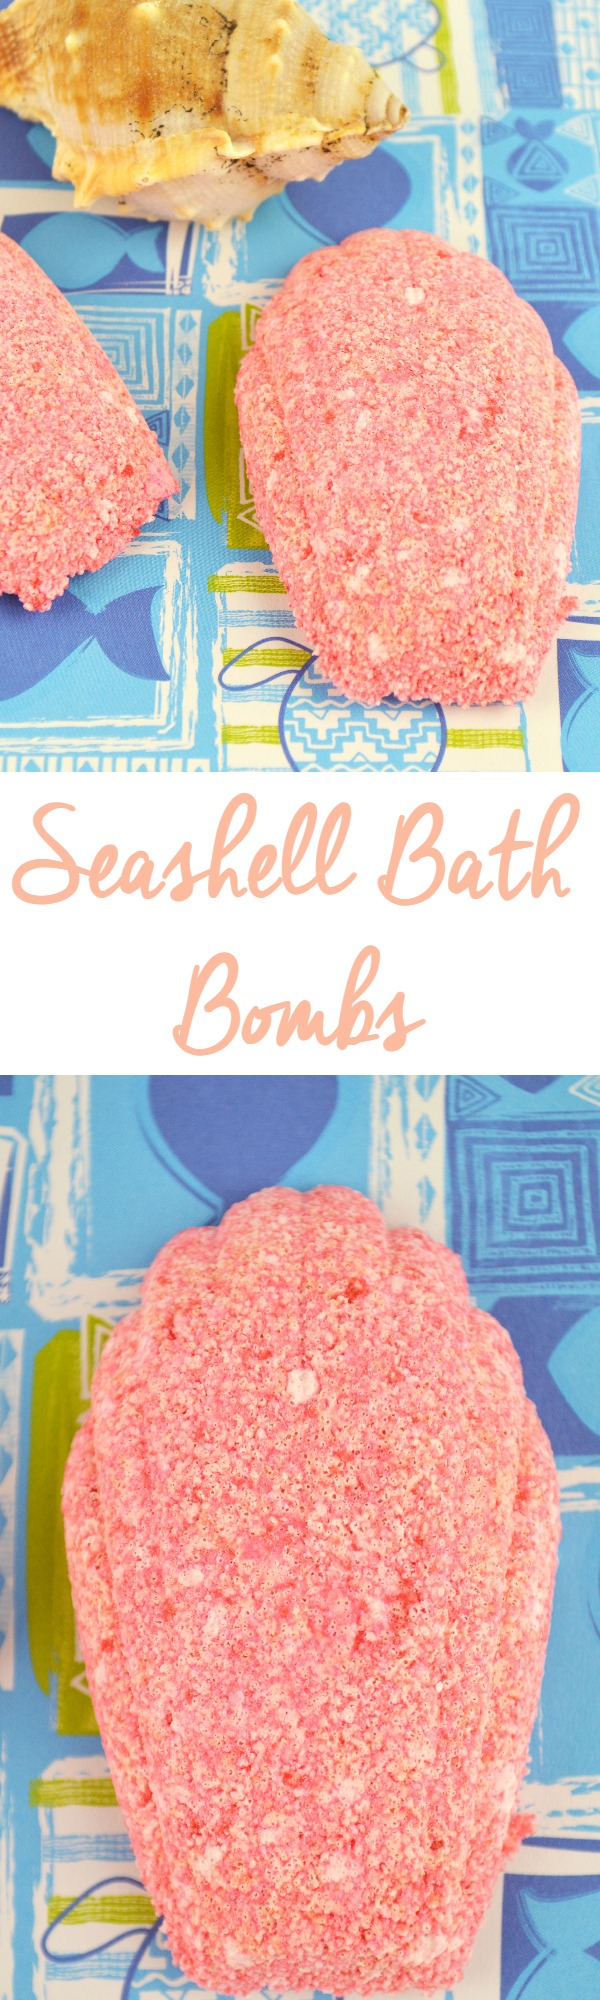 Seashell Bath Bombs - Essential Oils Recipe